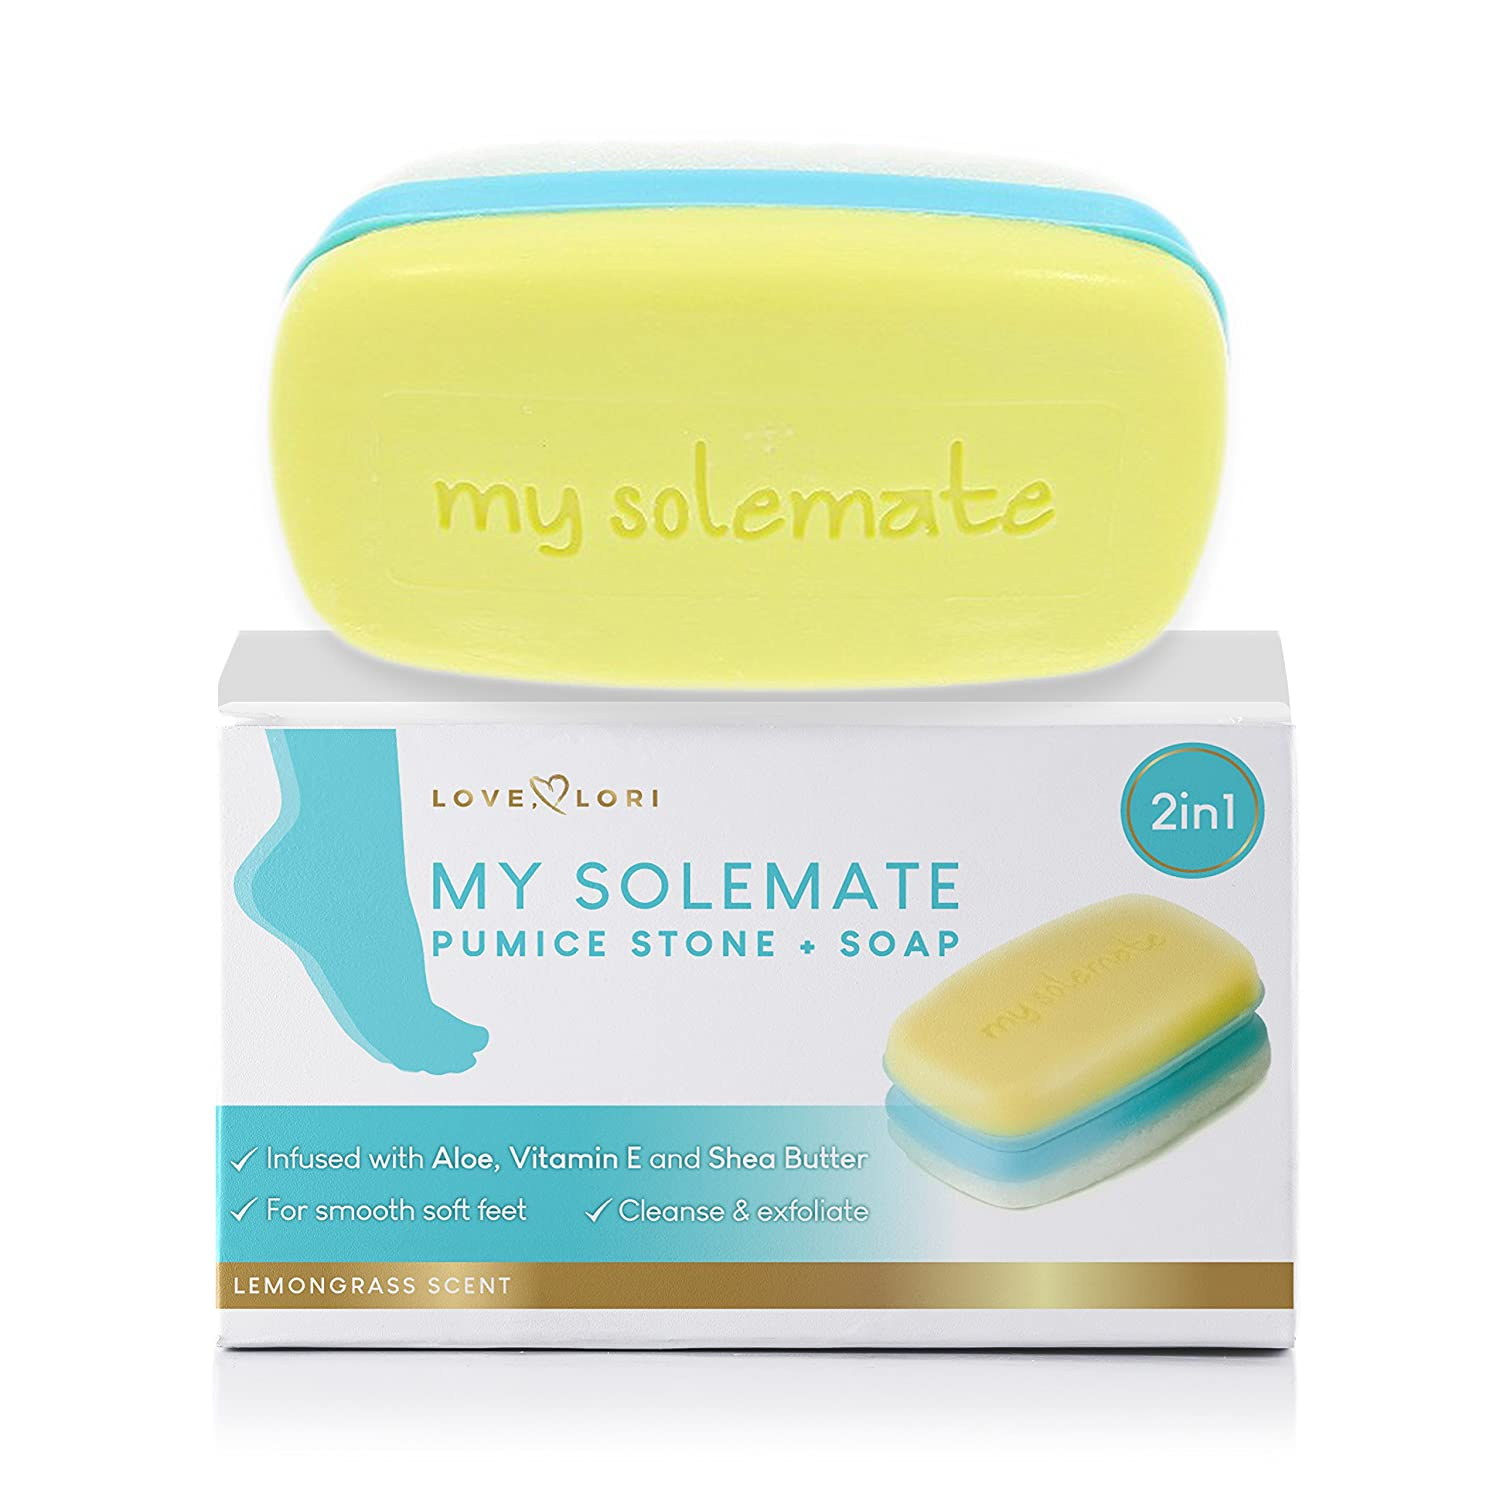 2 in 1 Foot Pumice Stone Scrubber and Callus Remover Cracked Heel Treatment with Lemongrass Moisturizing Foot Soap - My Solemate: Beauty